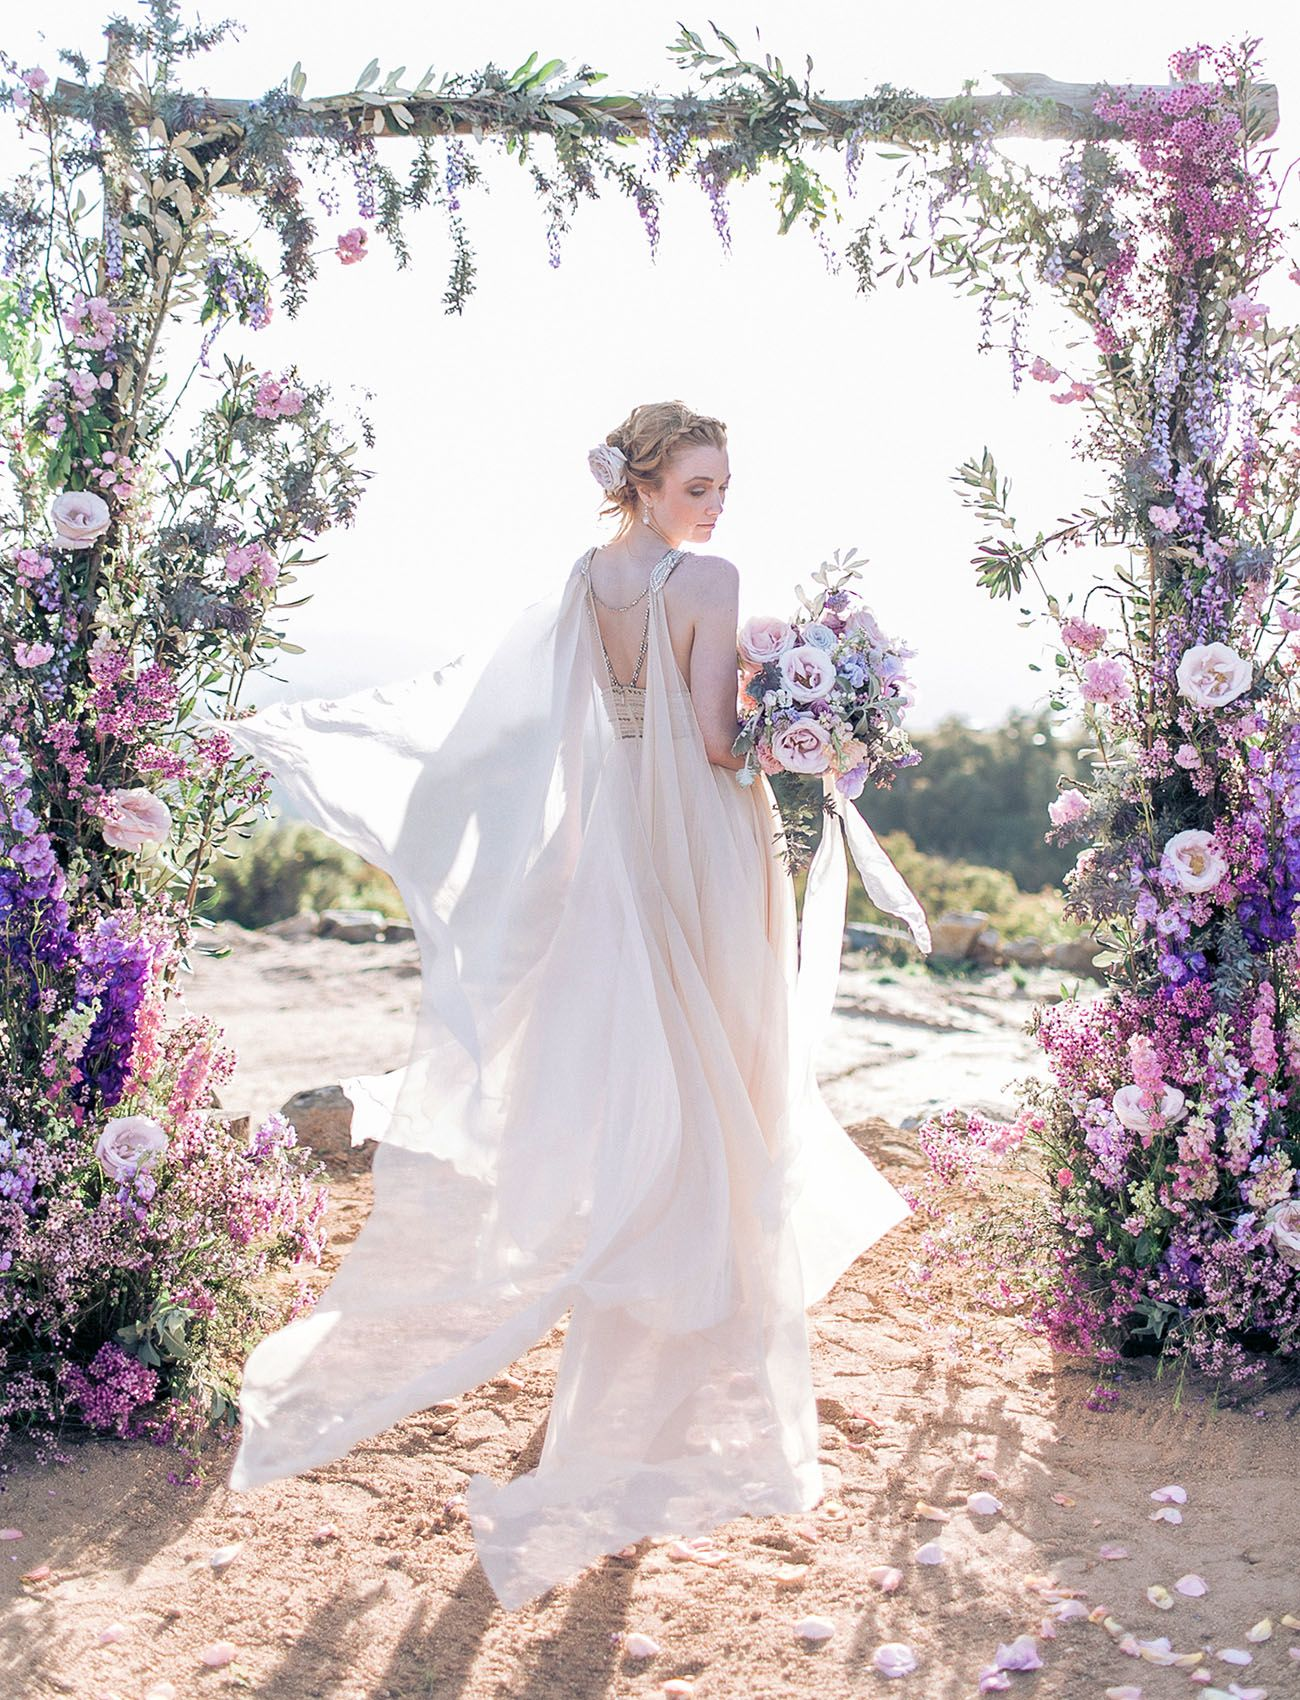 The Most Amazing Floral Arch We\'ve Ever Seen — Seriously | Pinterest ...